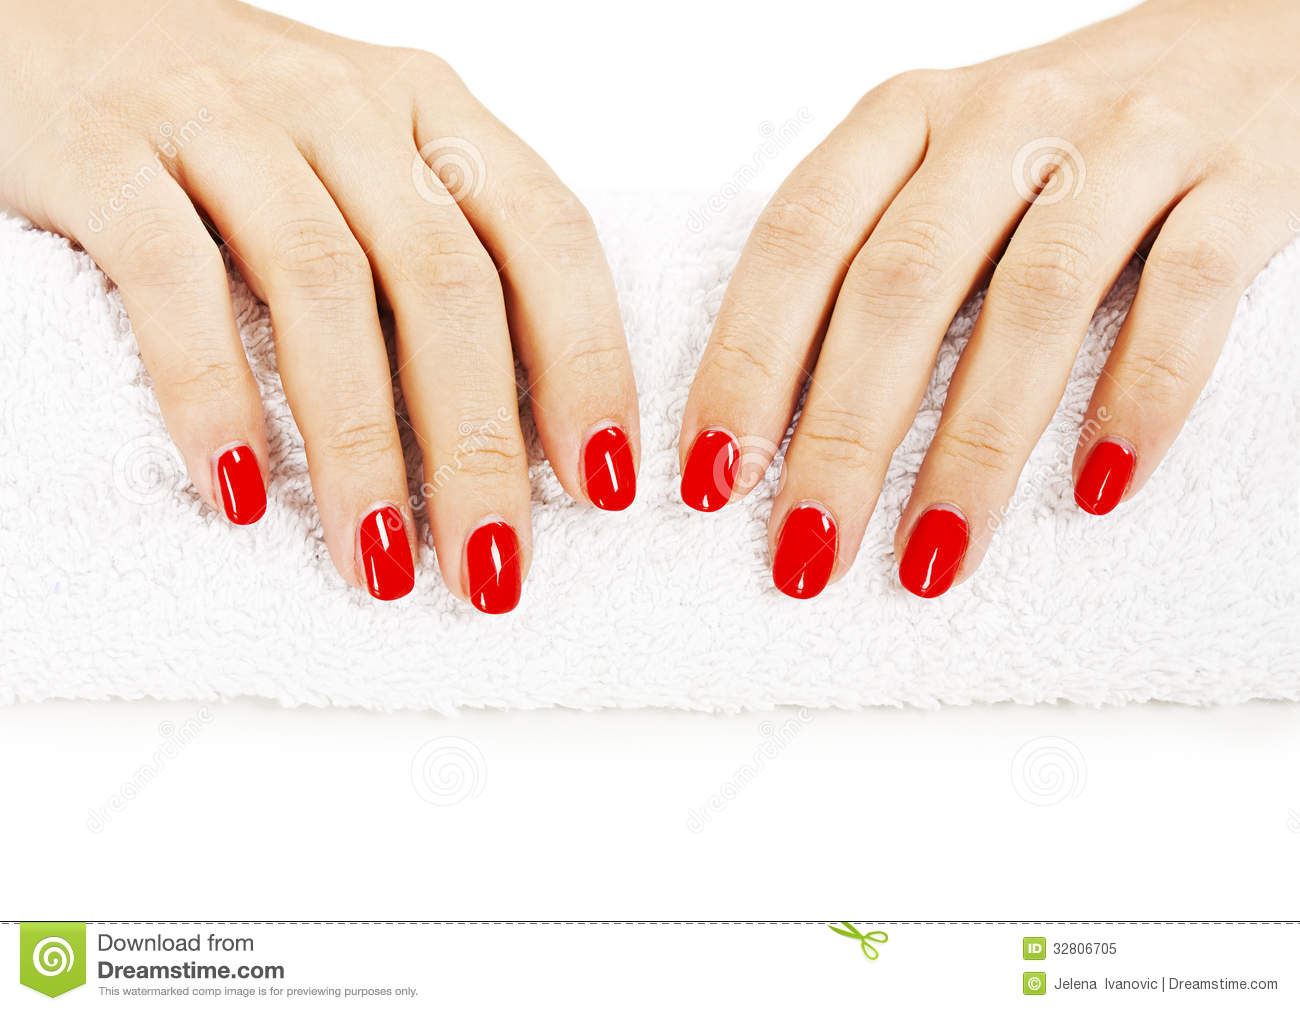 manicure nice manicured woman nails with red nail polish nail polish clip art free images nail polish clipart free